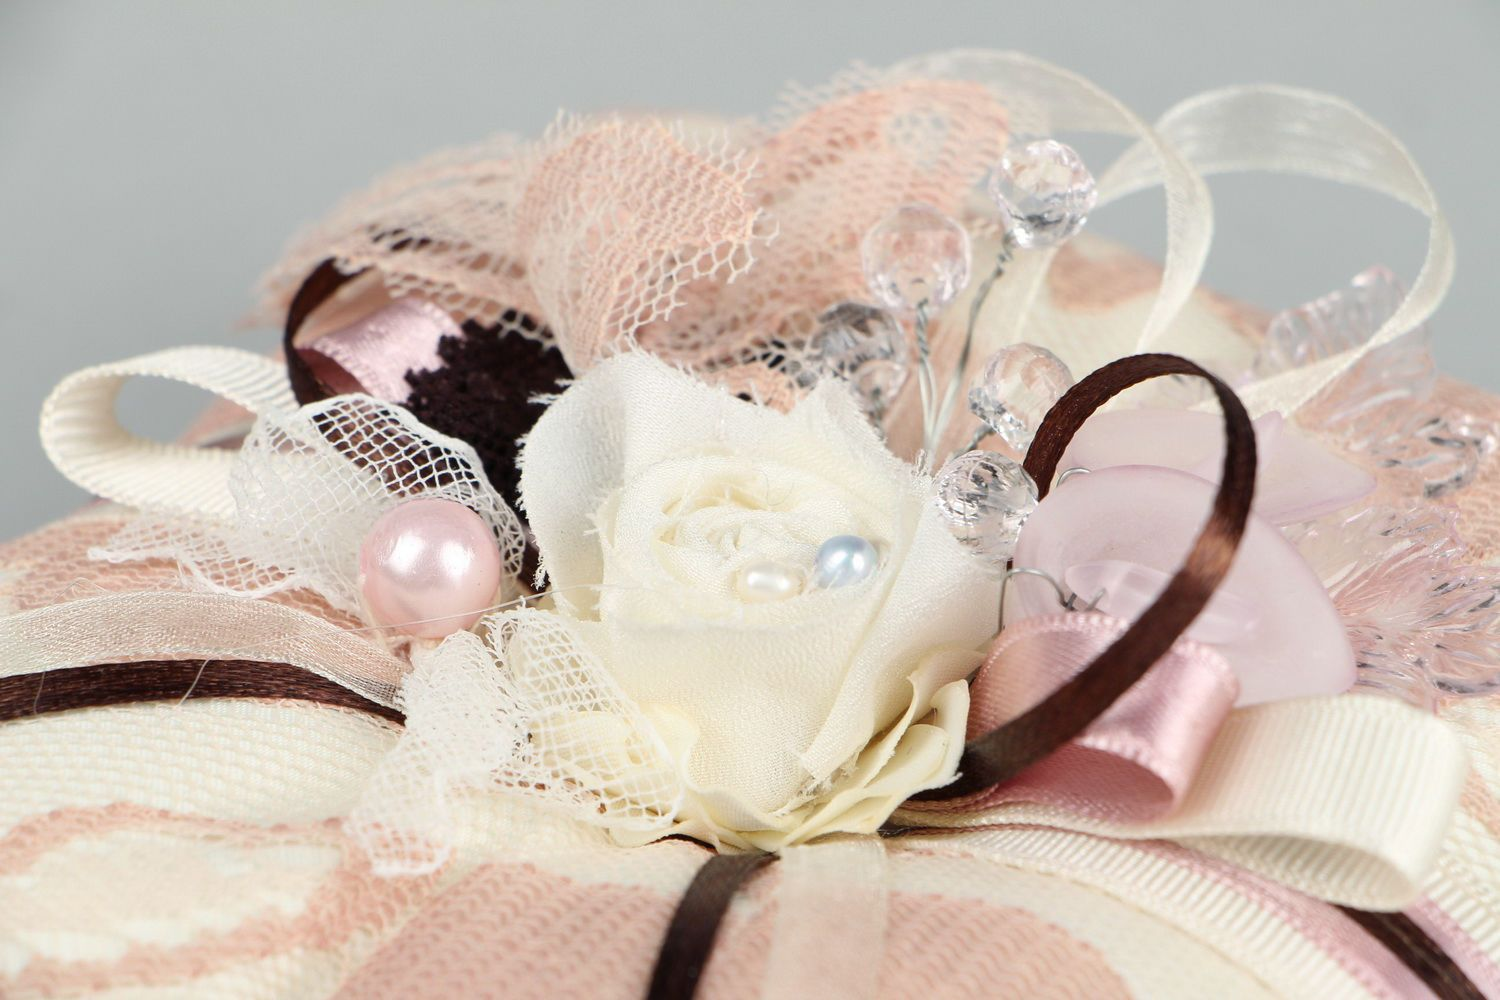 wedding accessories Wedding pillow for rings - MADEheart.com